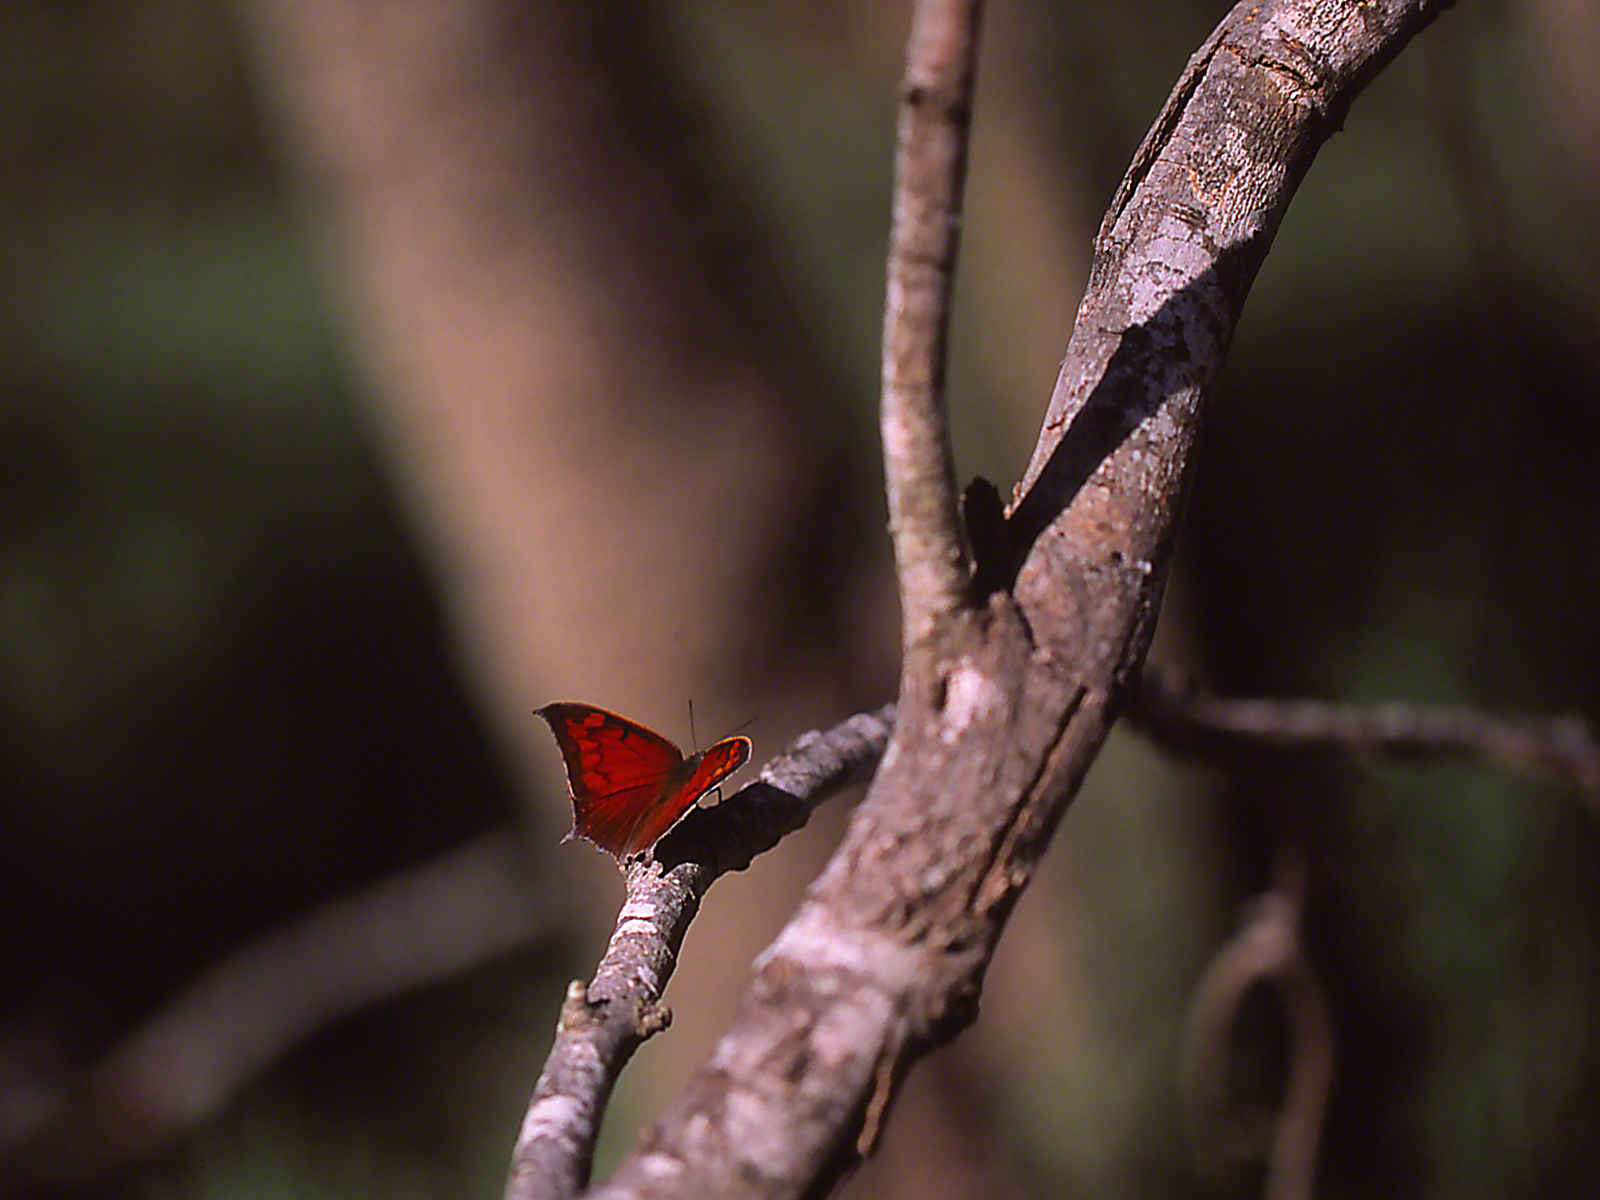 Tropical leafwing butterfly (Dorsal view) photographed by Jeff Zablow at the National Butterfly Center, Mission, TX